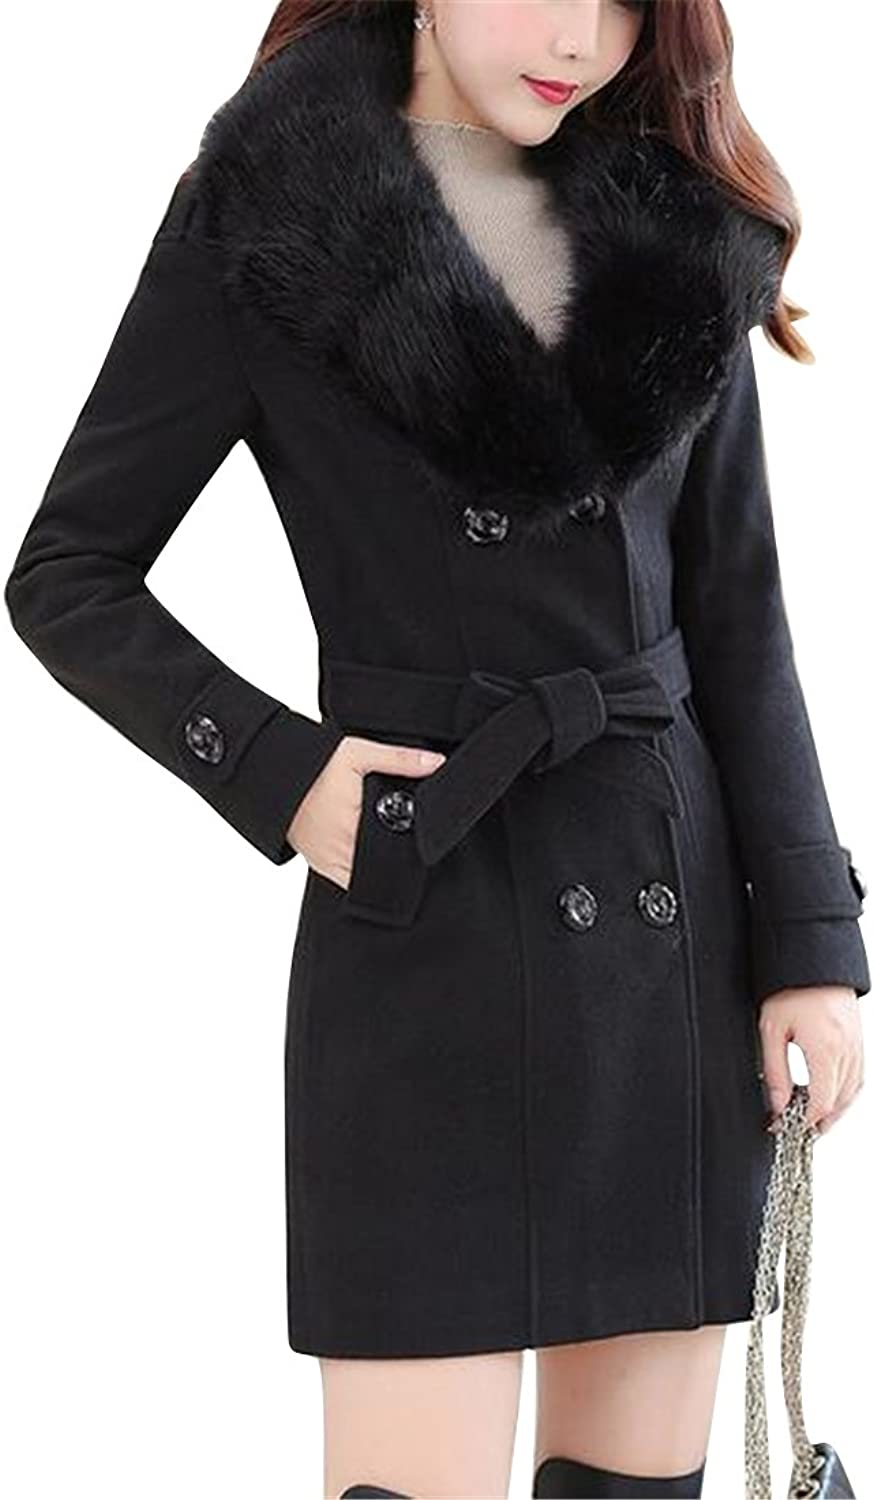 Fubotevic Women Slim Fit Faux Fur Collar Wool Blend Double Breasted Winter Pea Coat Overcoat